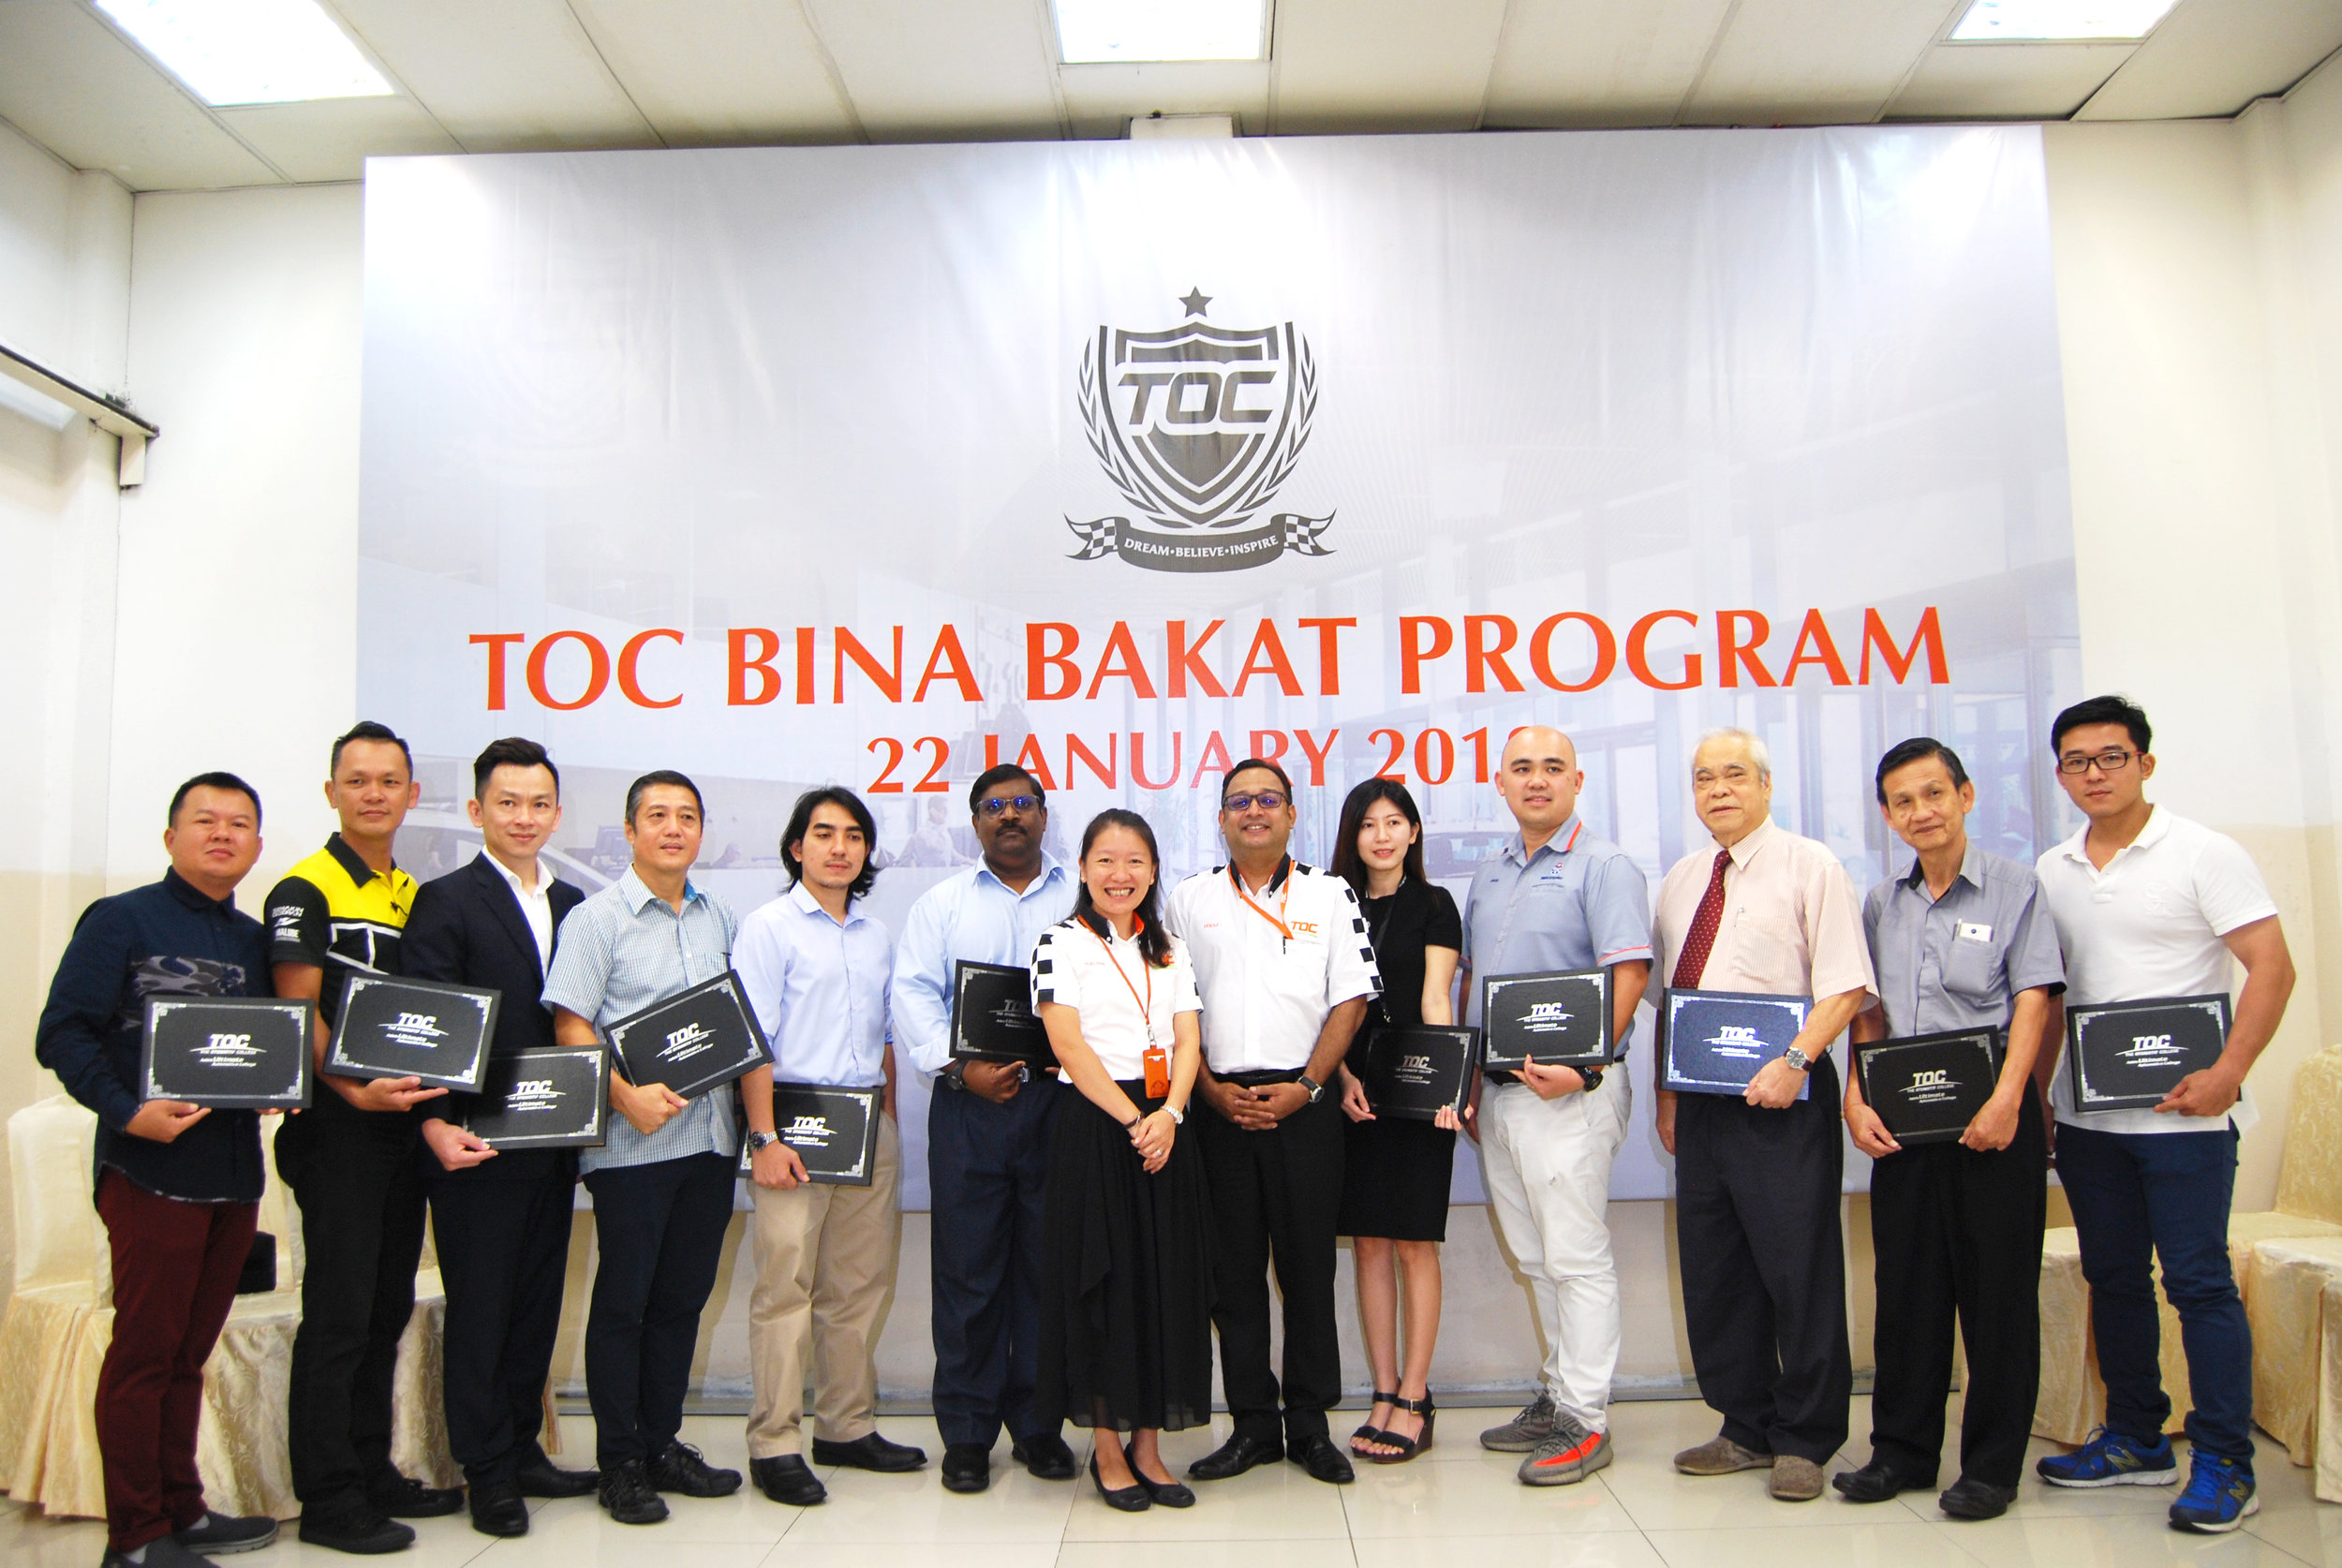 Adelaine Foo, Founder and Chief Executive Officer of TOC Automotive College and Prem Kumar Mathavan, Principle of TOC Automotive College with TOC Industry Partners at TOC Bina Bakat program launching press conference.